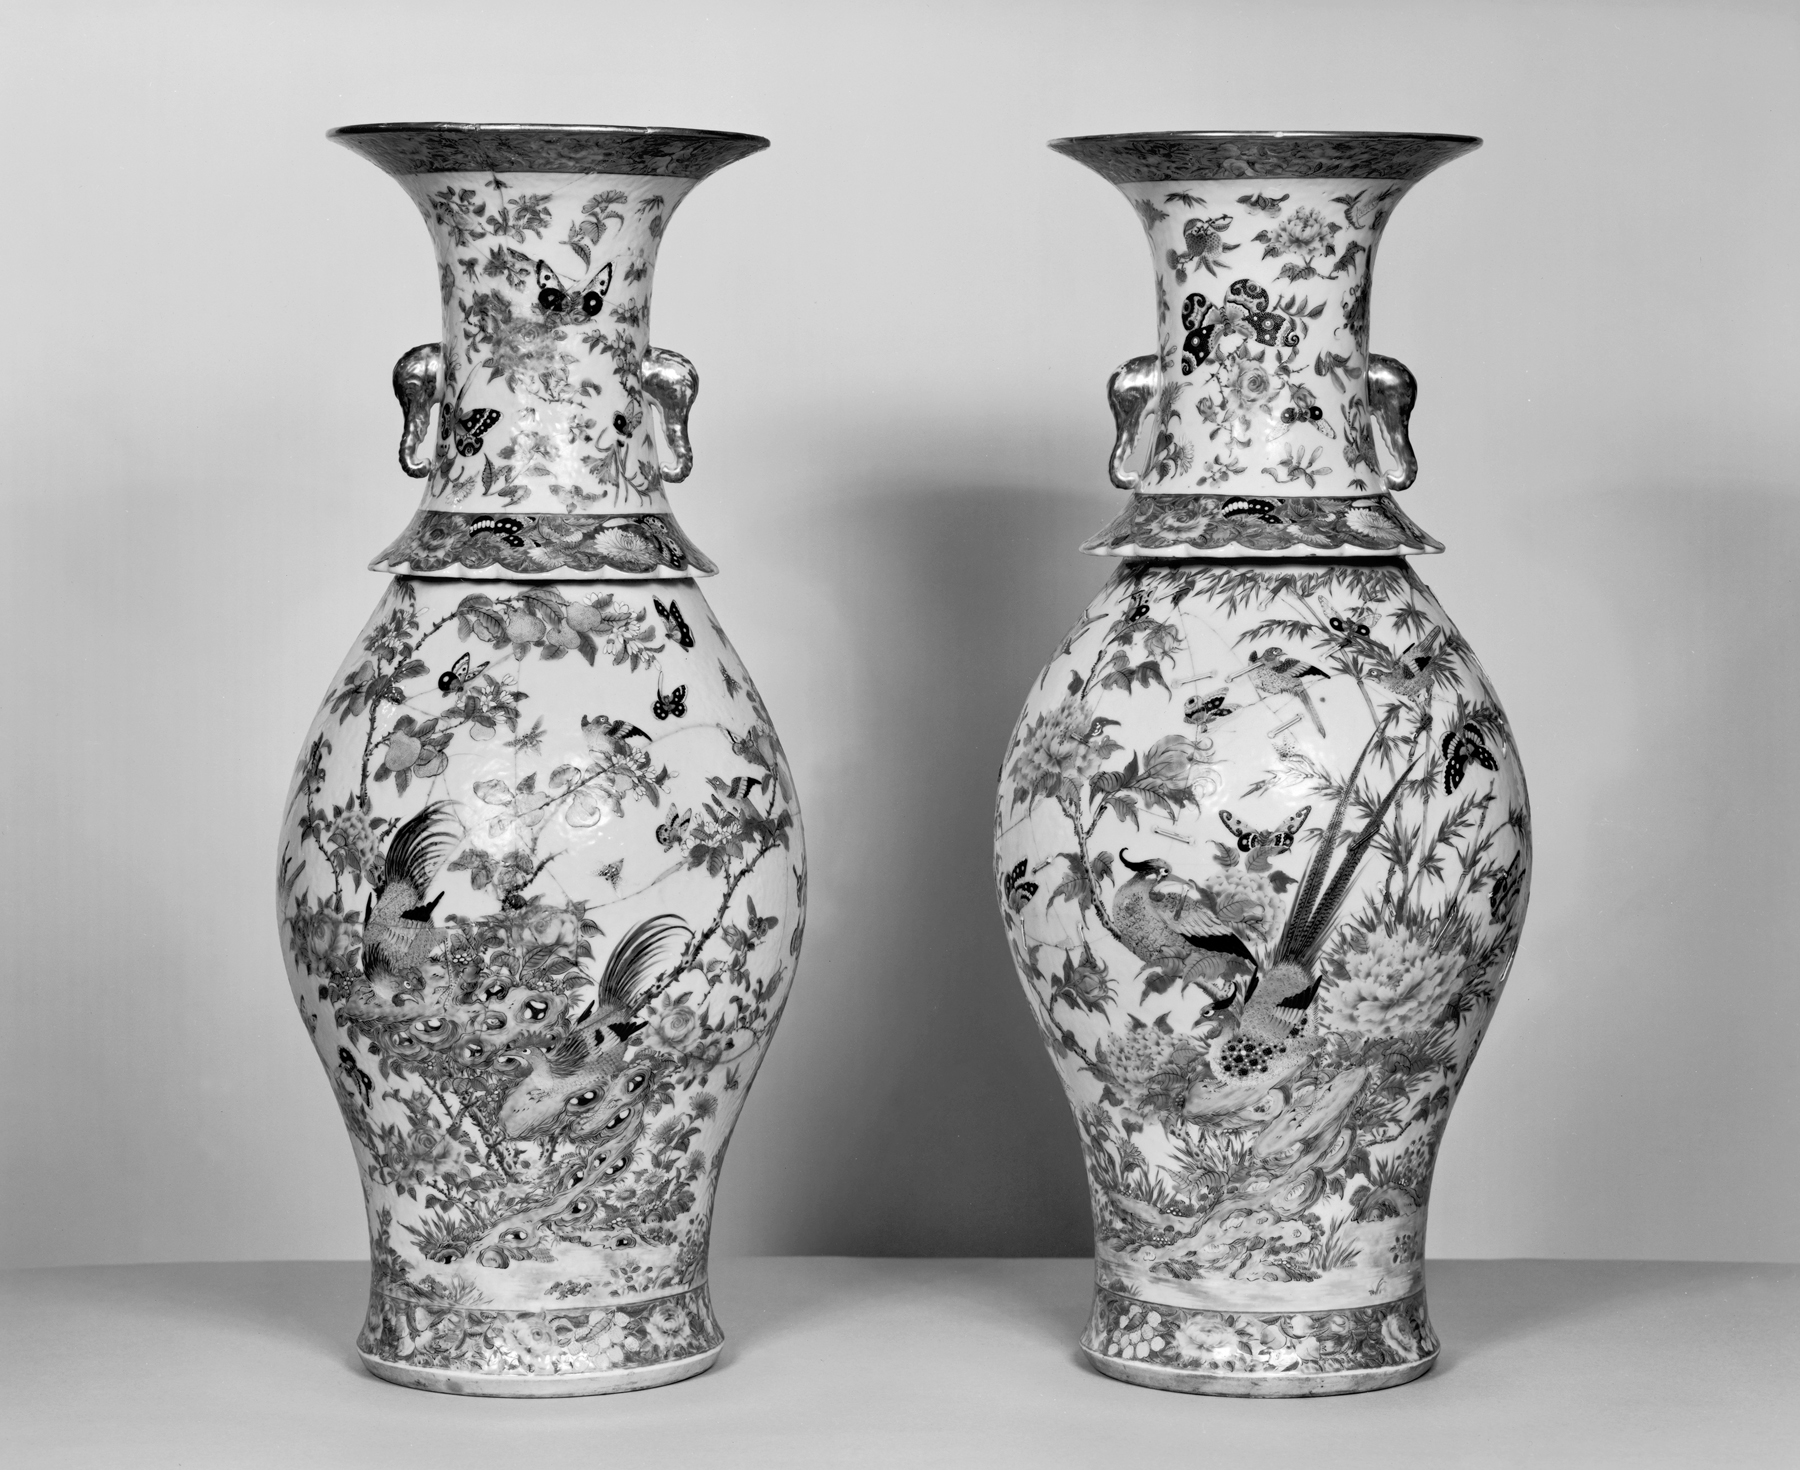 Filechinese pair of vases with flowers insects and birds filechinese pair of vases with flowers insects and birds walters reviewsmspy